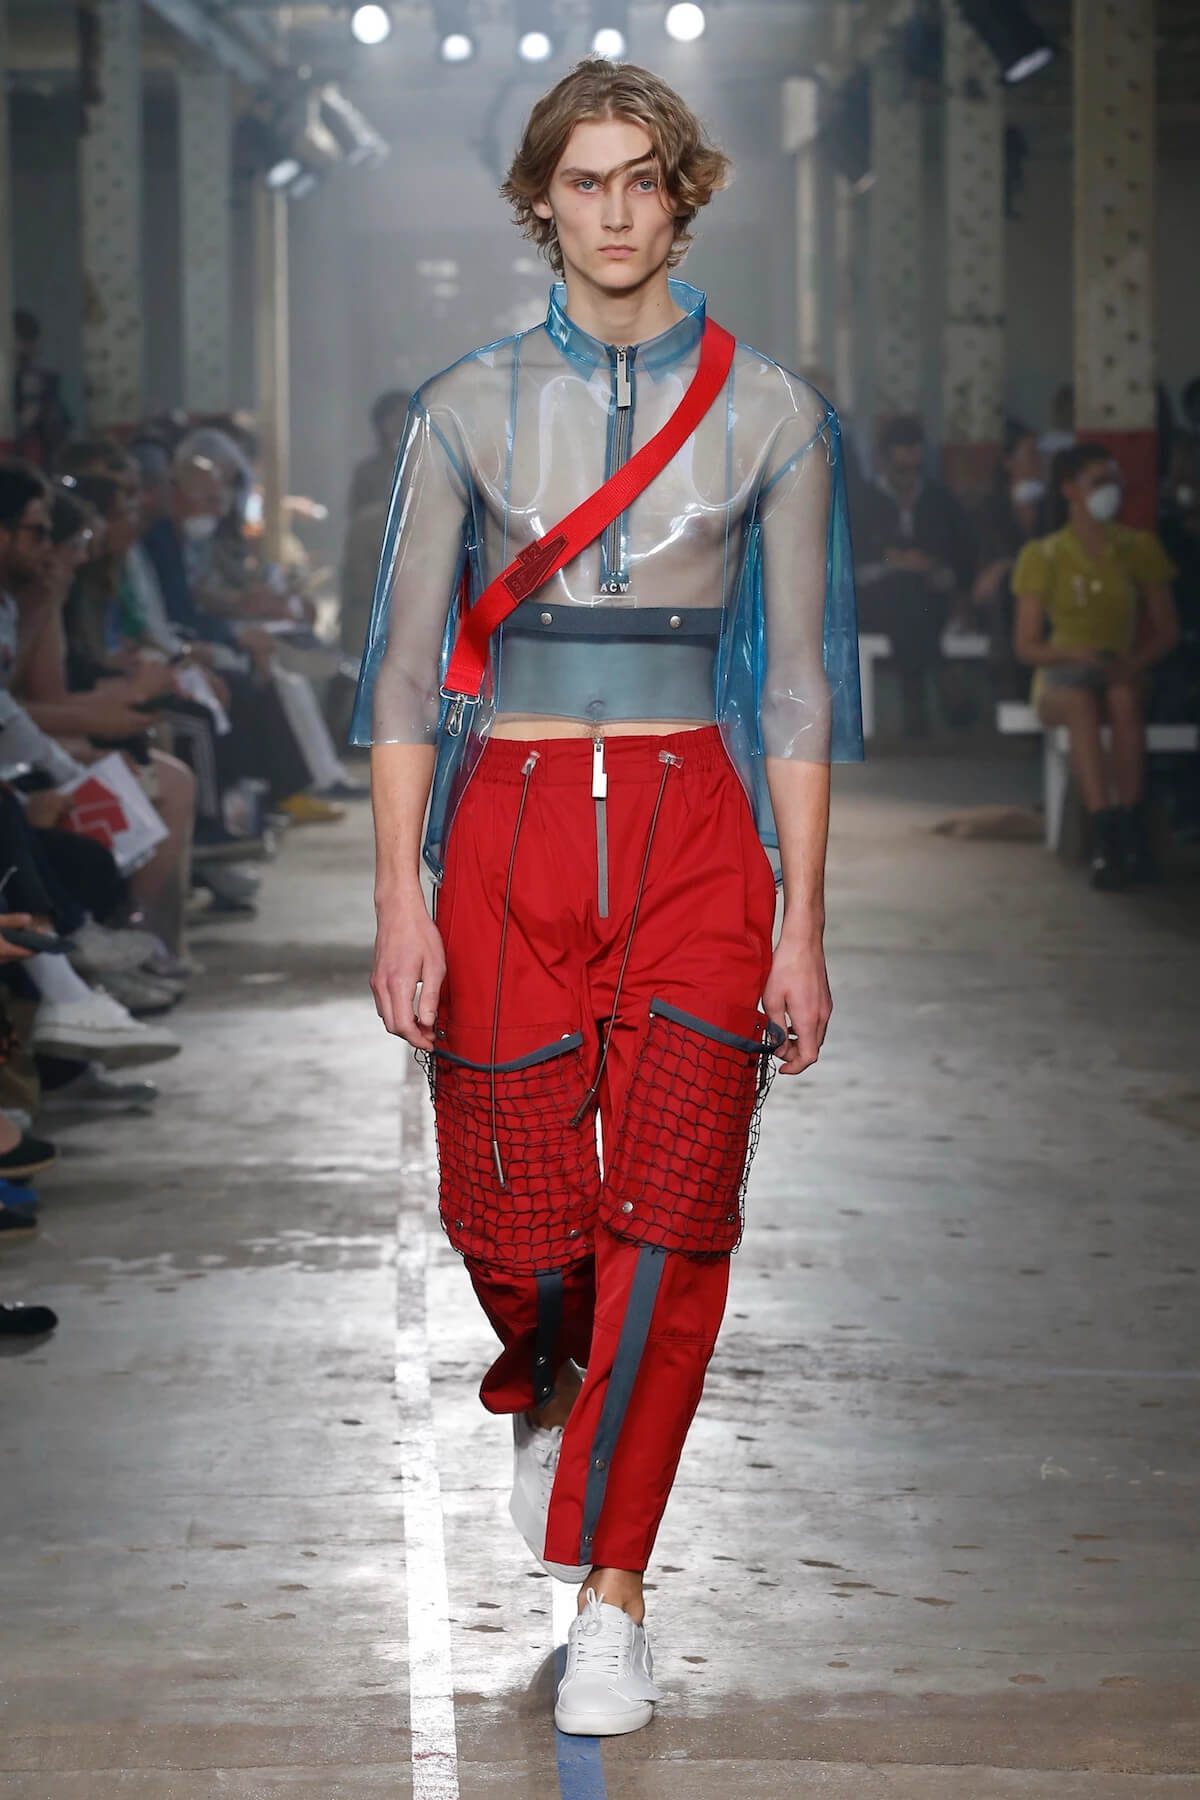 A-COLD-WALL* - Spring / Summer 2019. Imagen: A-COLD-WALL*